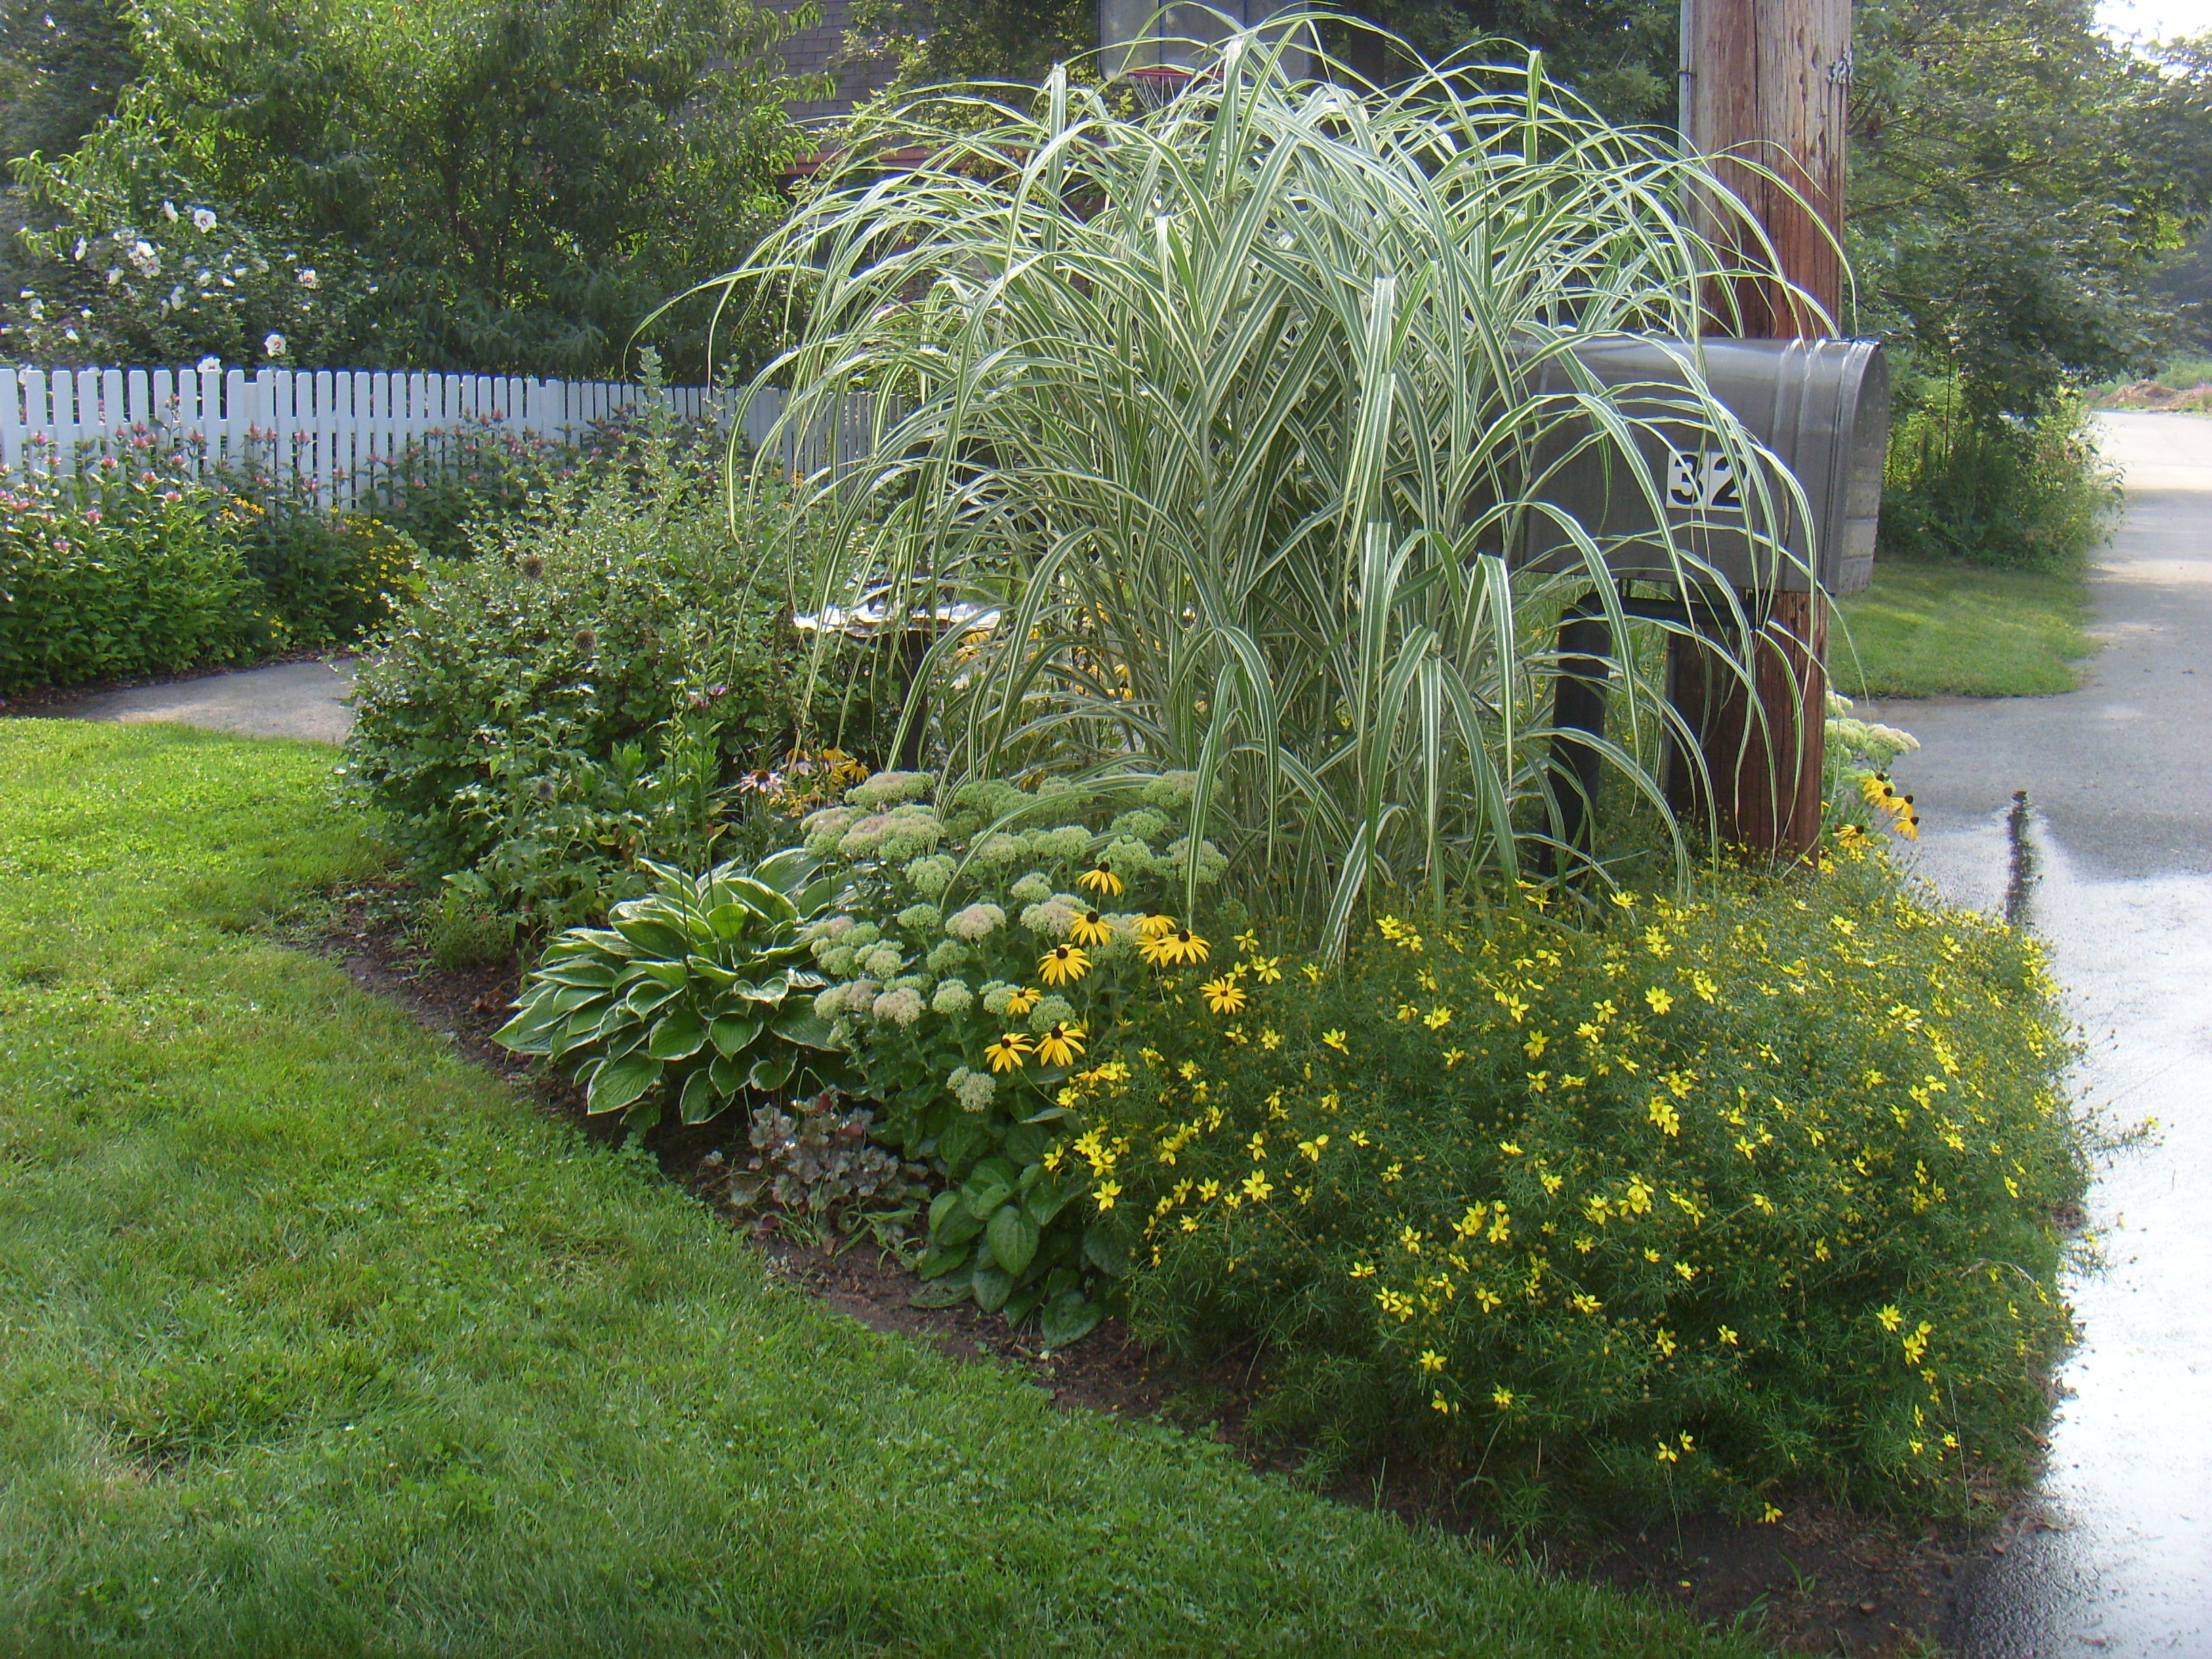 Mailbox Garden End Of Summer Ornamental Grass To Cover Crooked Post Mailbox Landscaping Mailbox Garden House Landscape